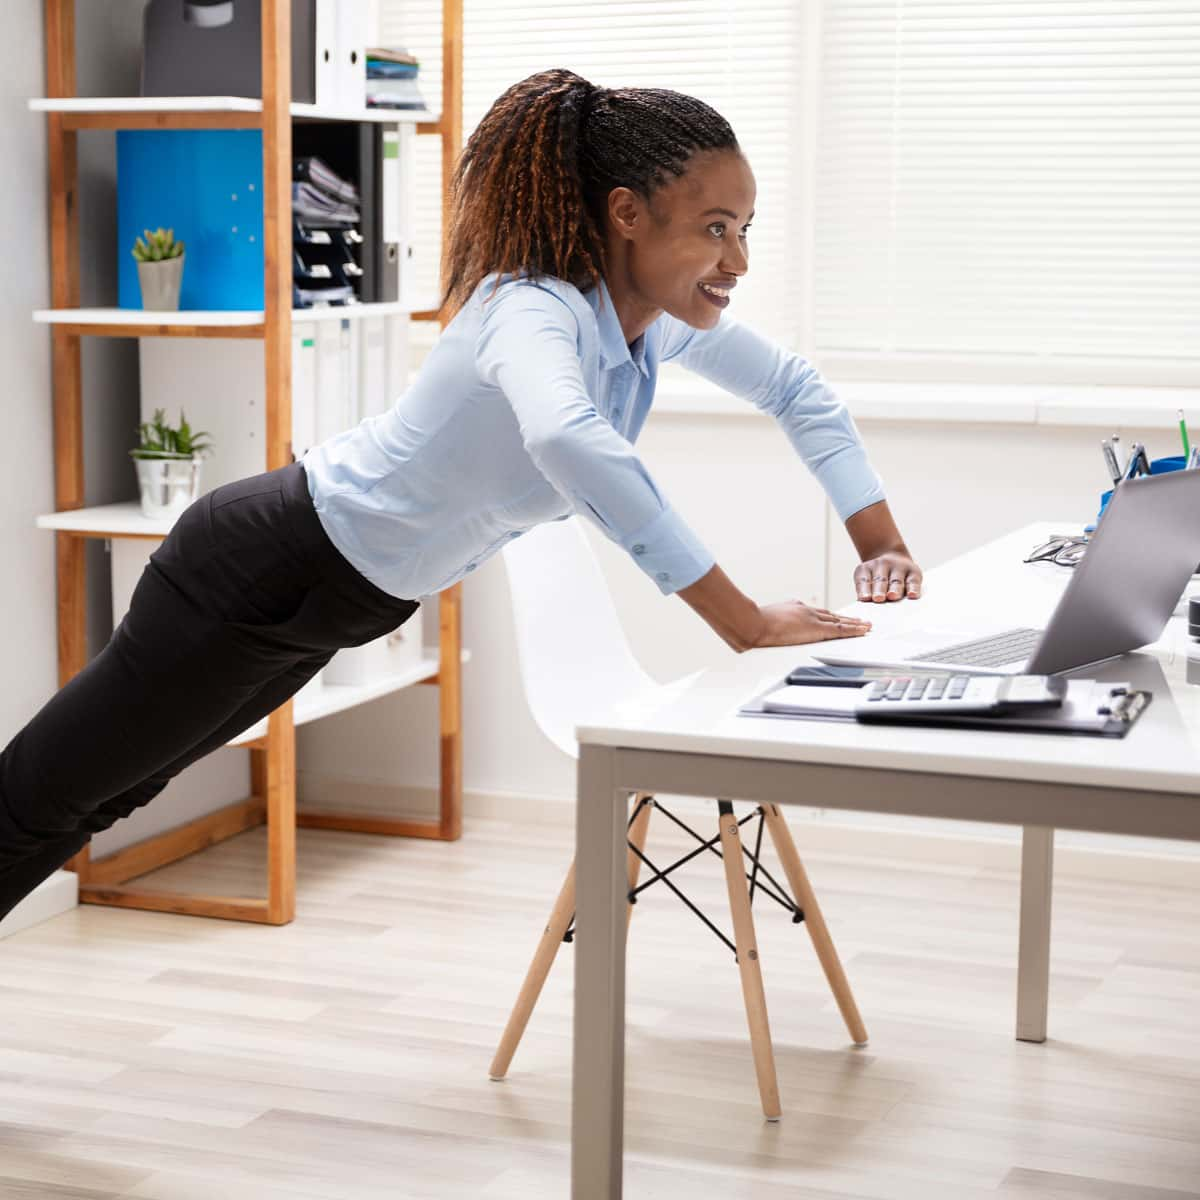 Woman exercising at her desk by doing push-ups